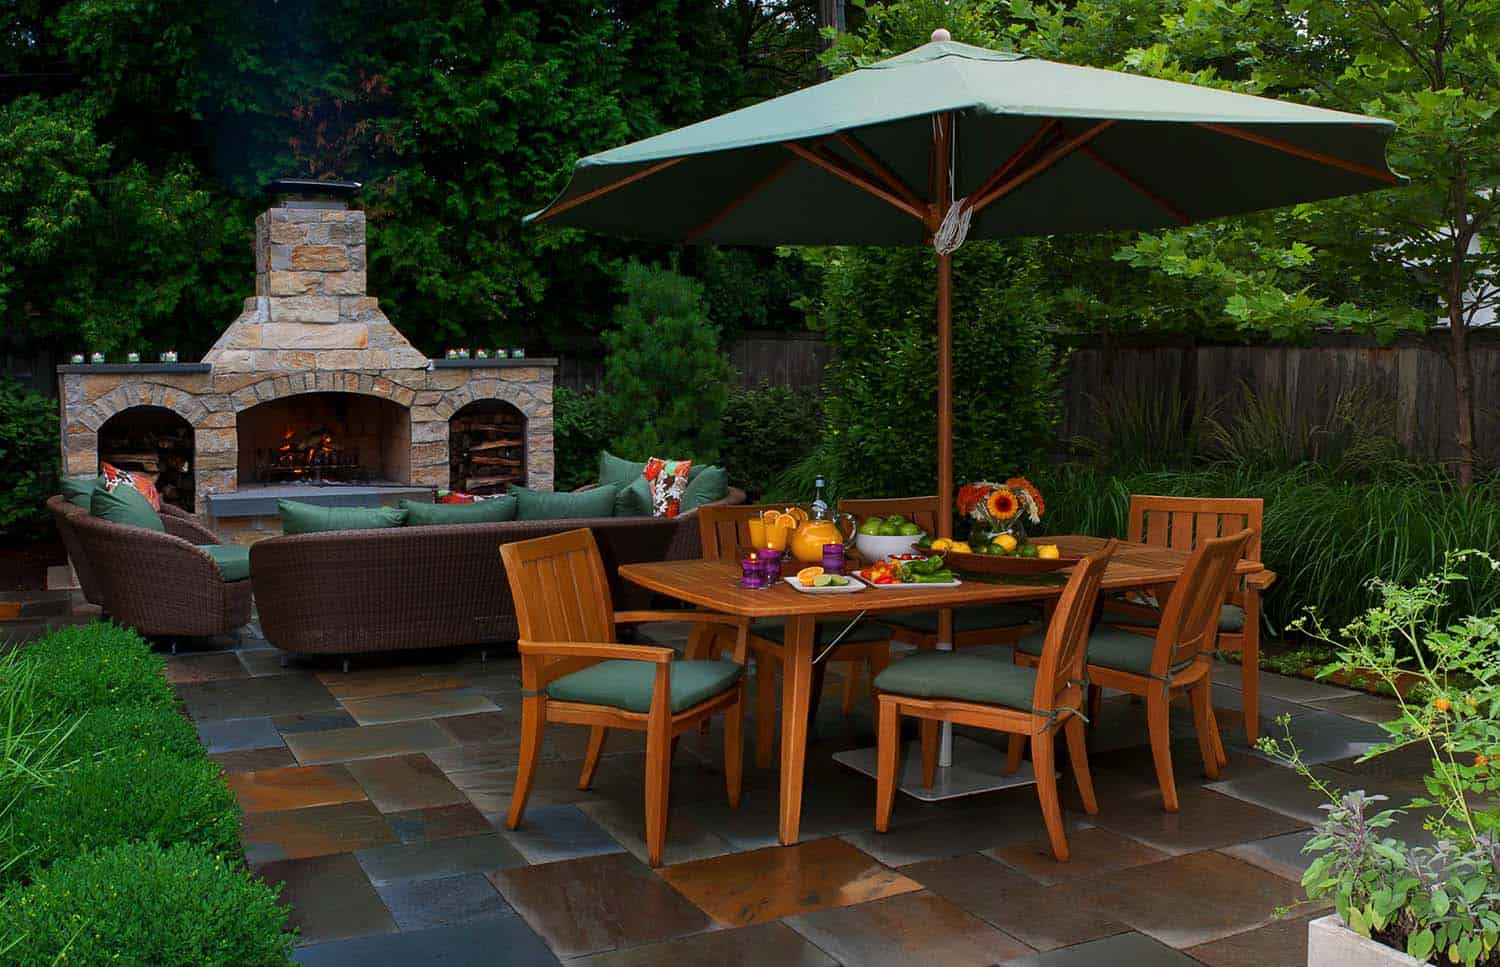 25 fabulous outdoor patio ideas to get ready for spring enjoyment - Small covered patio ideas ...